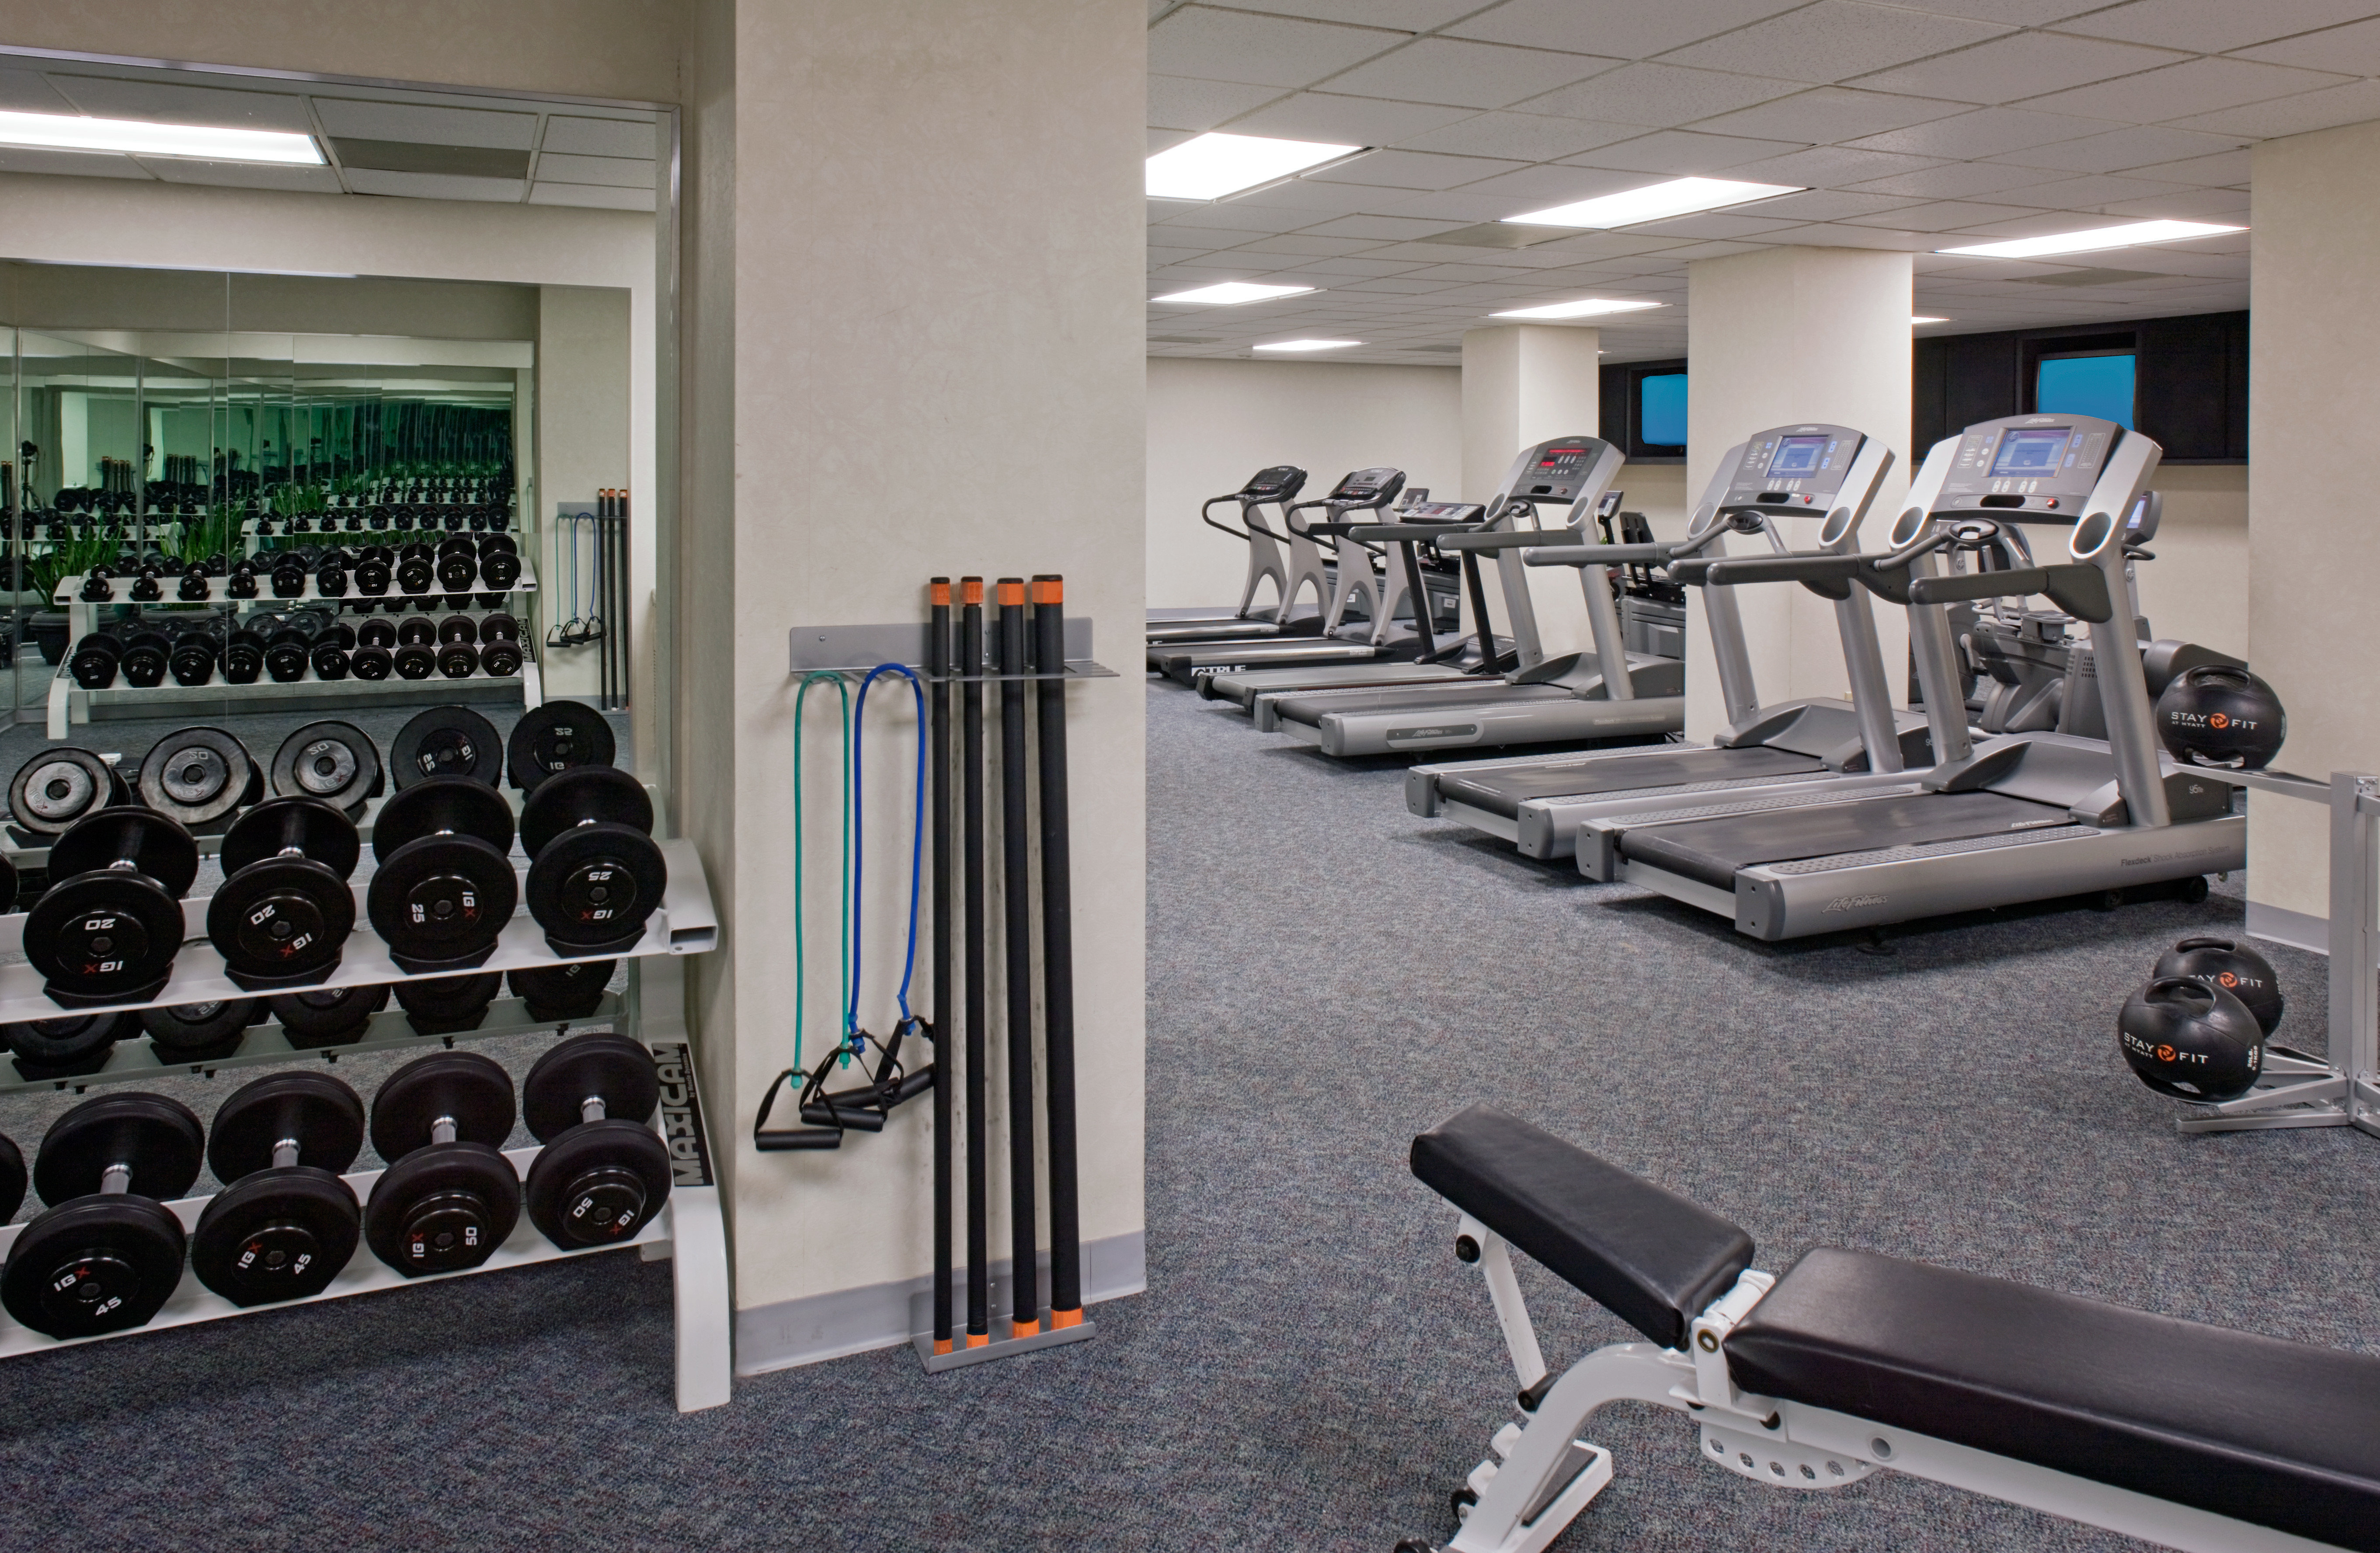 Business Classic Fitness Wellness structure gym sport venue muscle